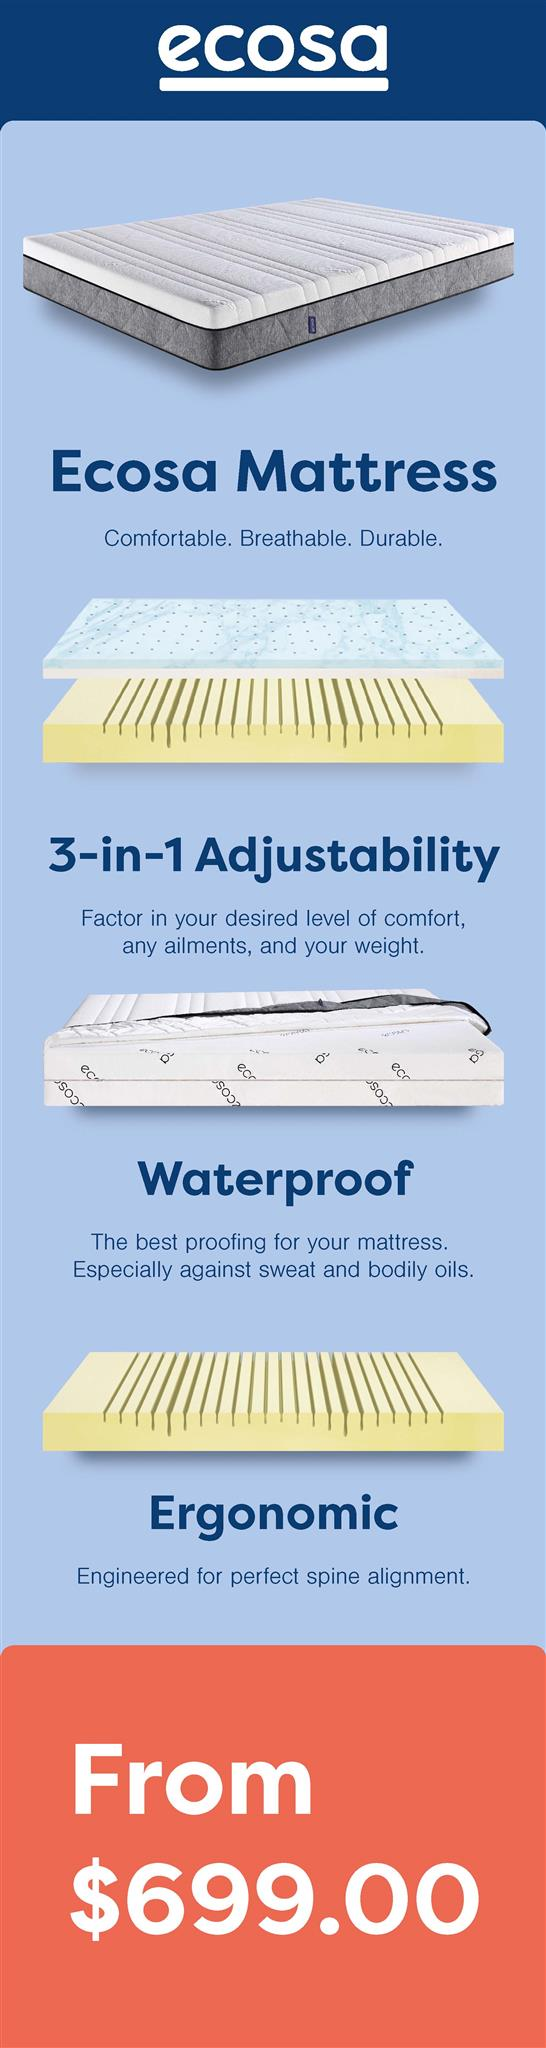 ecosa mattress default firmness